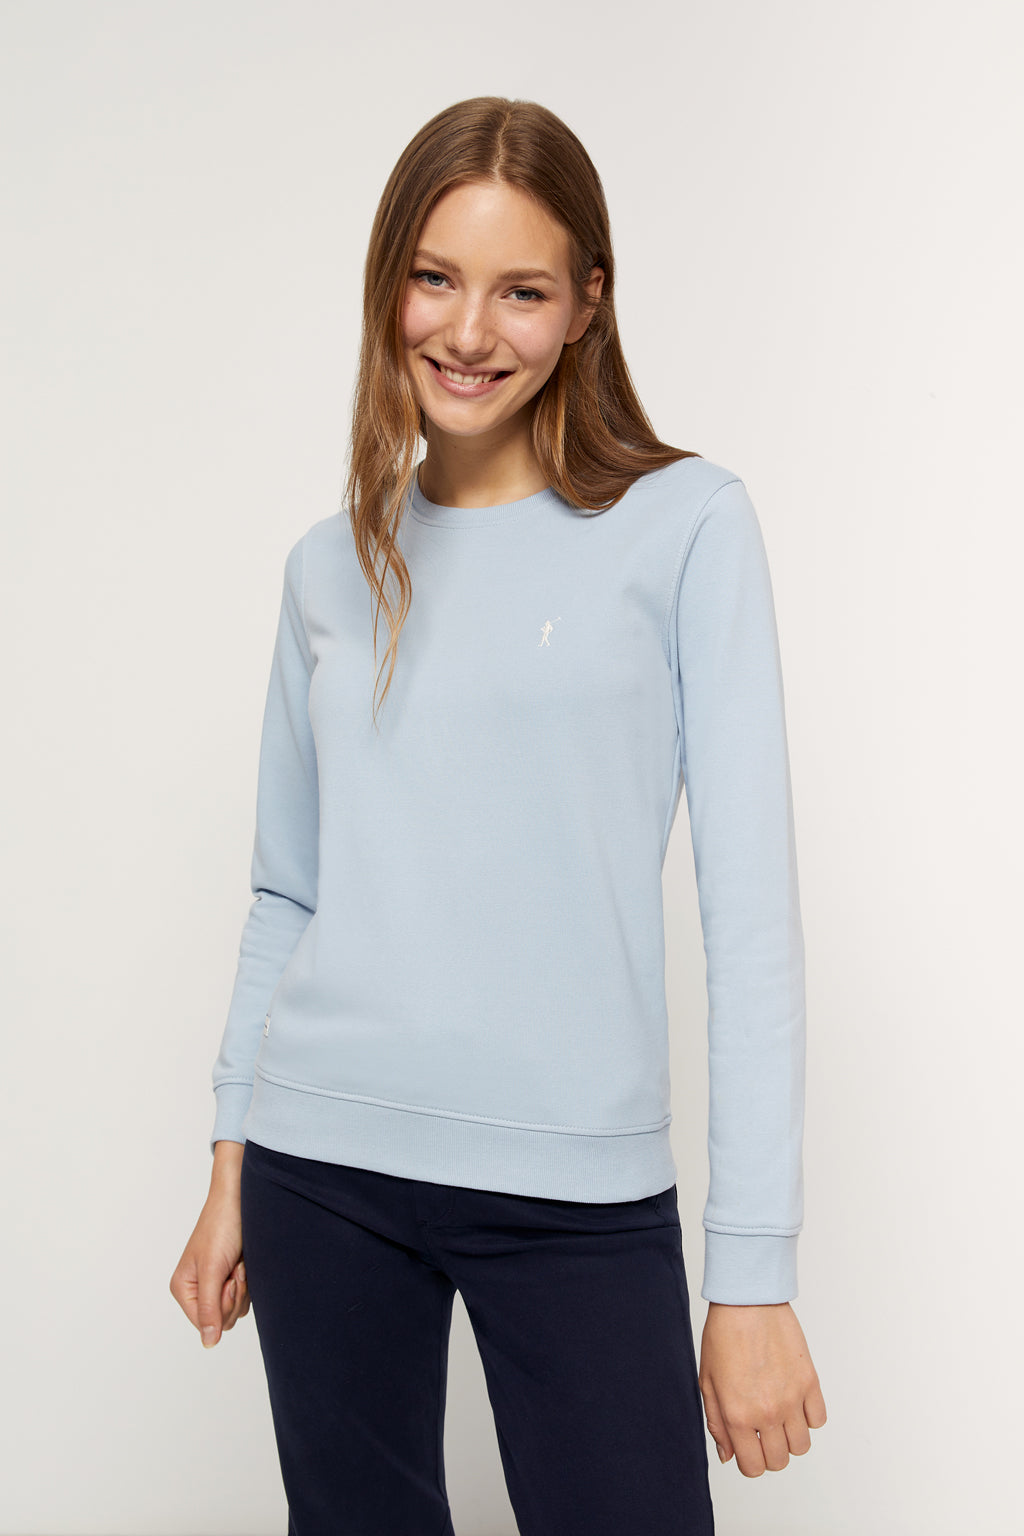 Sky blue organic sweatshirt with embroidered logo